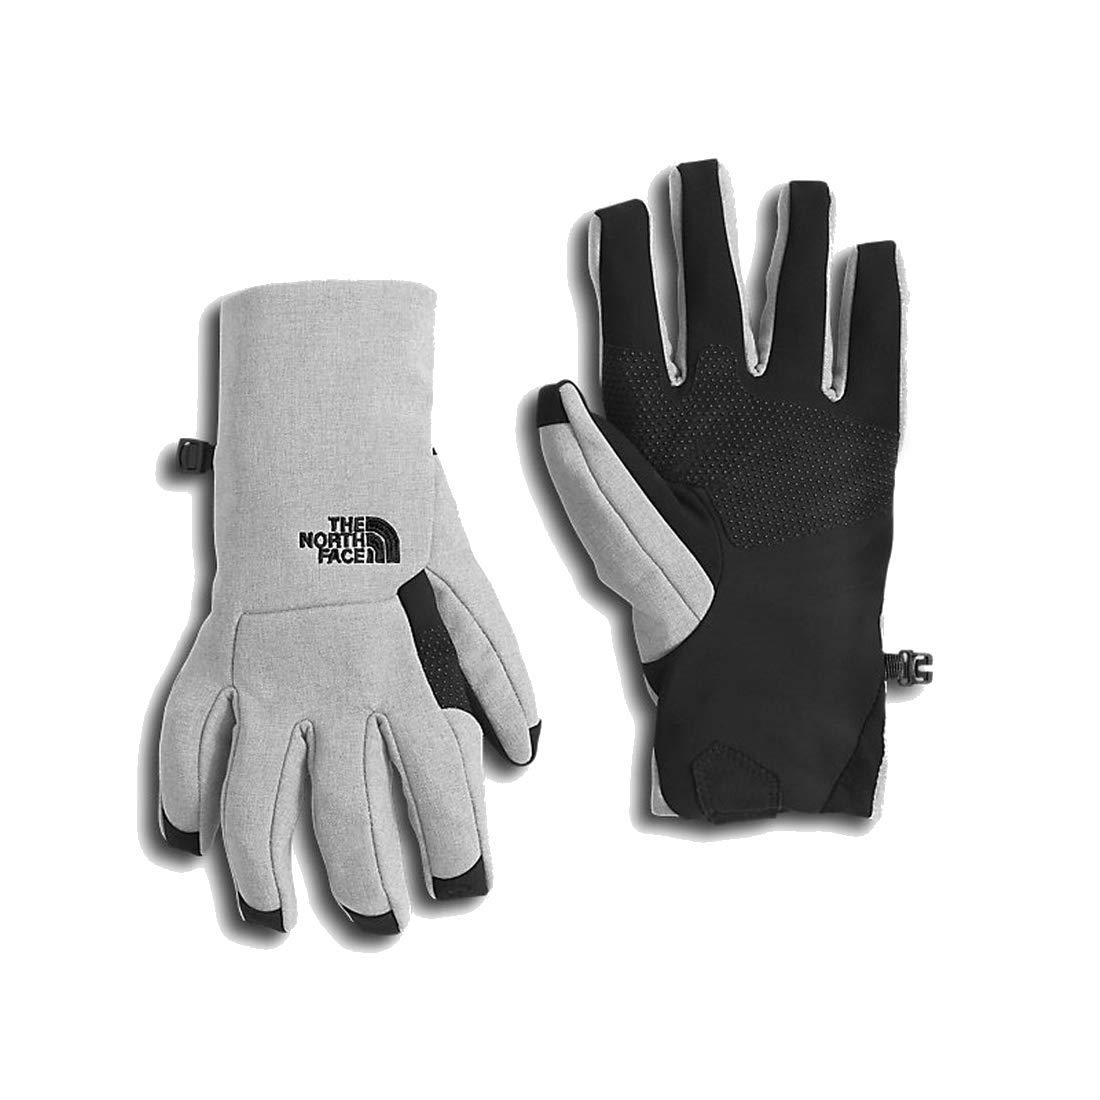 The North Face Womens Etip Glove (Sizes XS - L) - tnf light grey heather, s